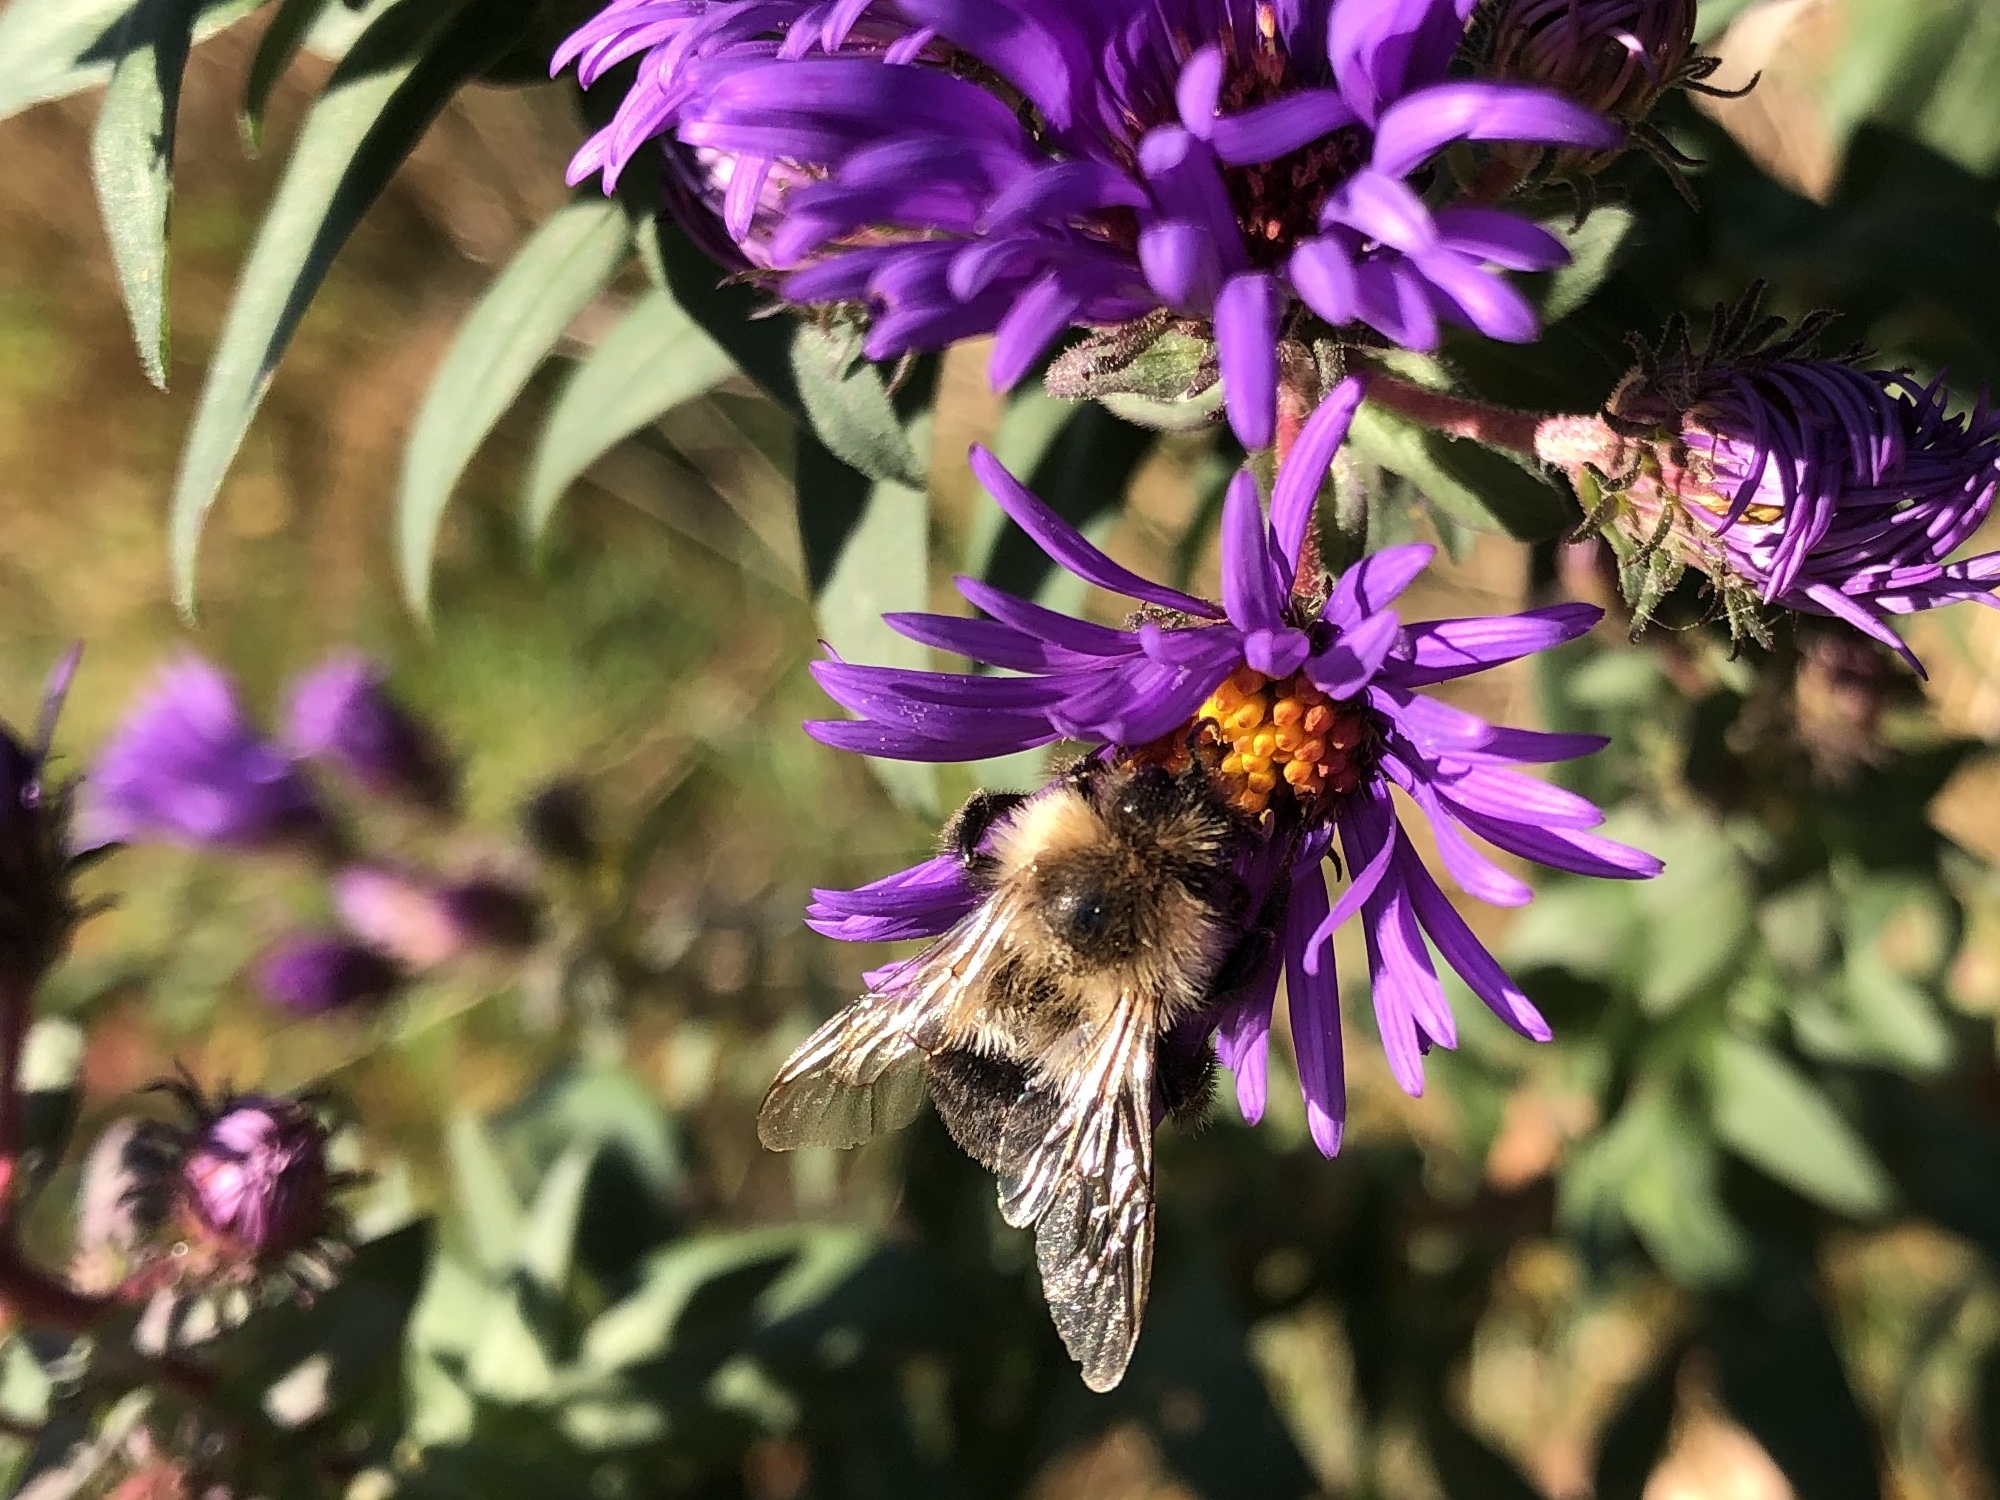 Bumblebee on aster on October 5, 2020.